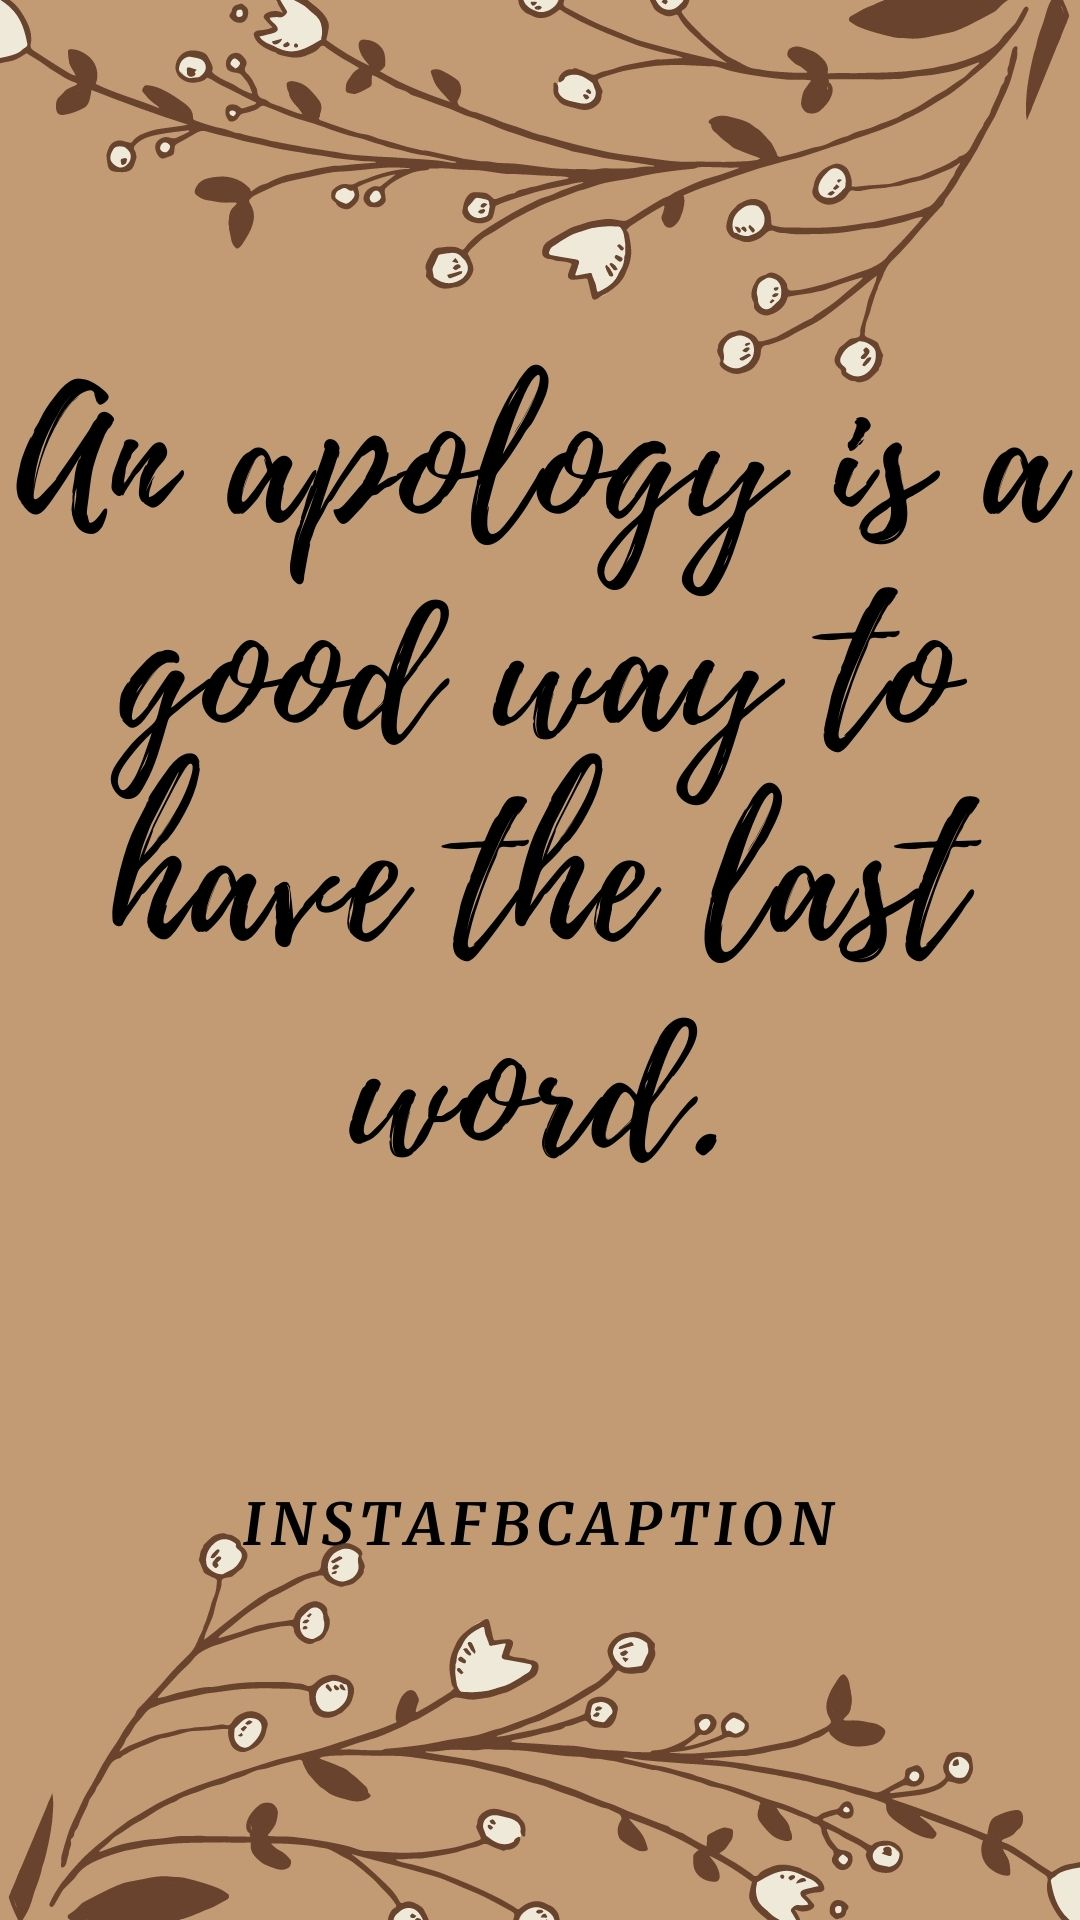 Best Apology Captions  - Best apology Captions - 100+ Sorry Captions & Quotes for Apology in 2021